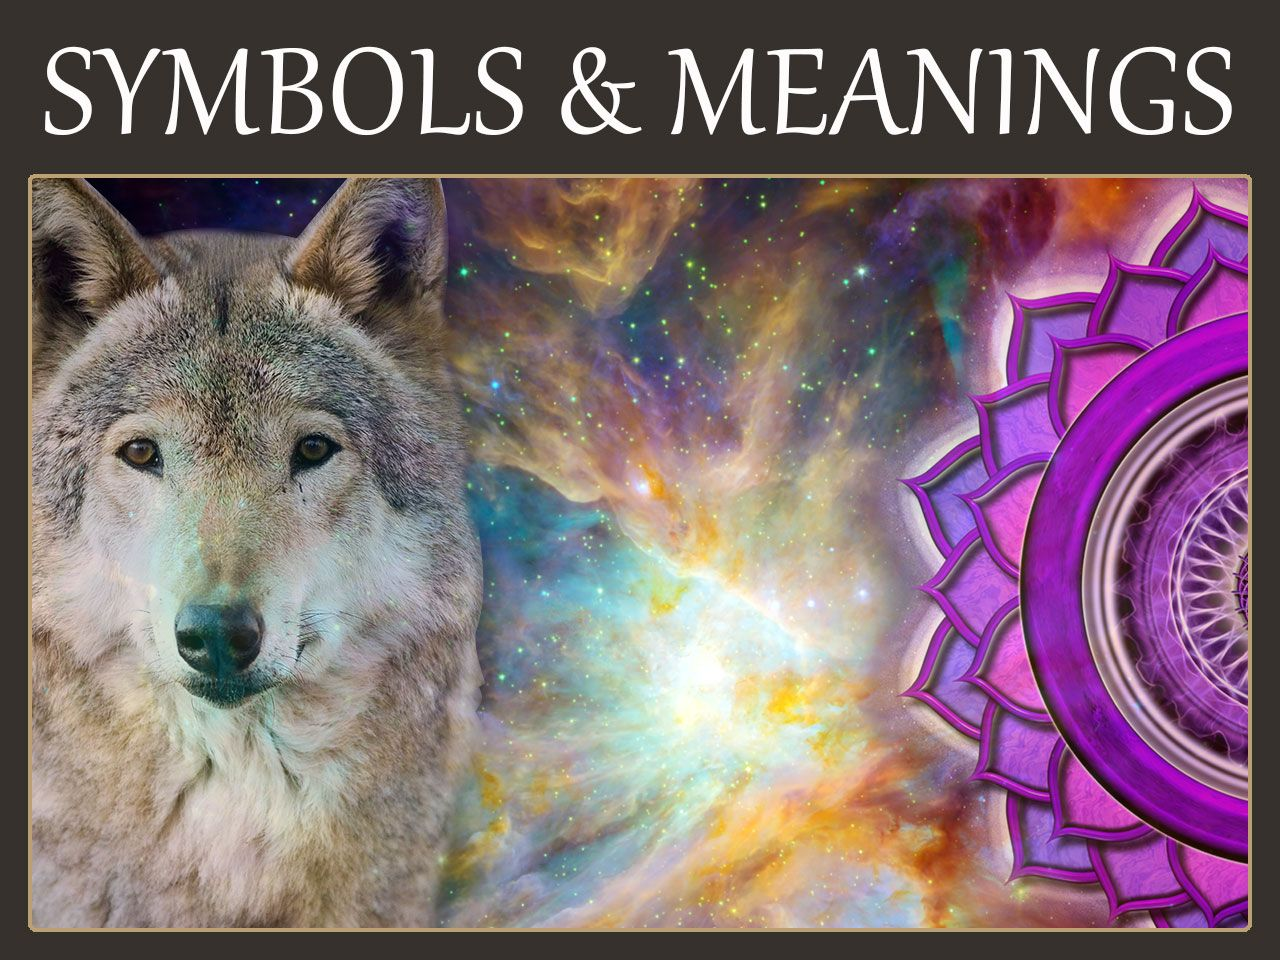 Symbols and meanings animals crystals dreams flowers native symbols symbolism meanings 1280x960 biocorpaavc Gallery